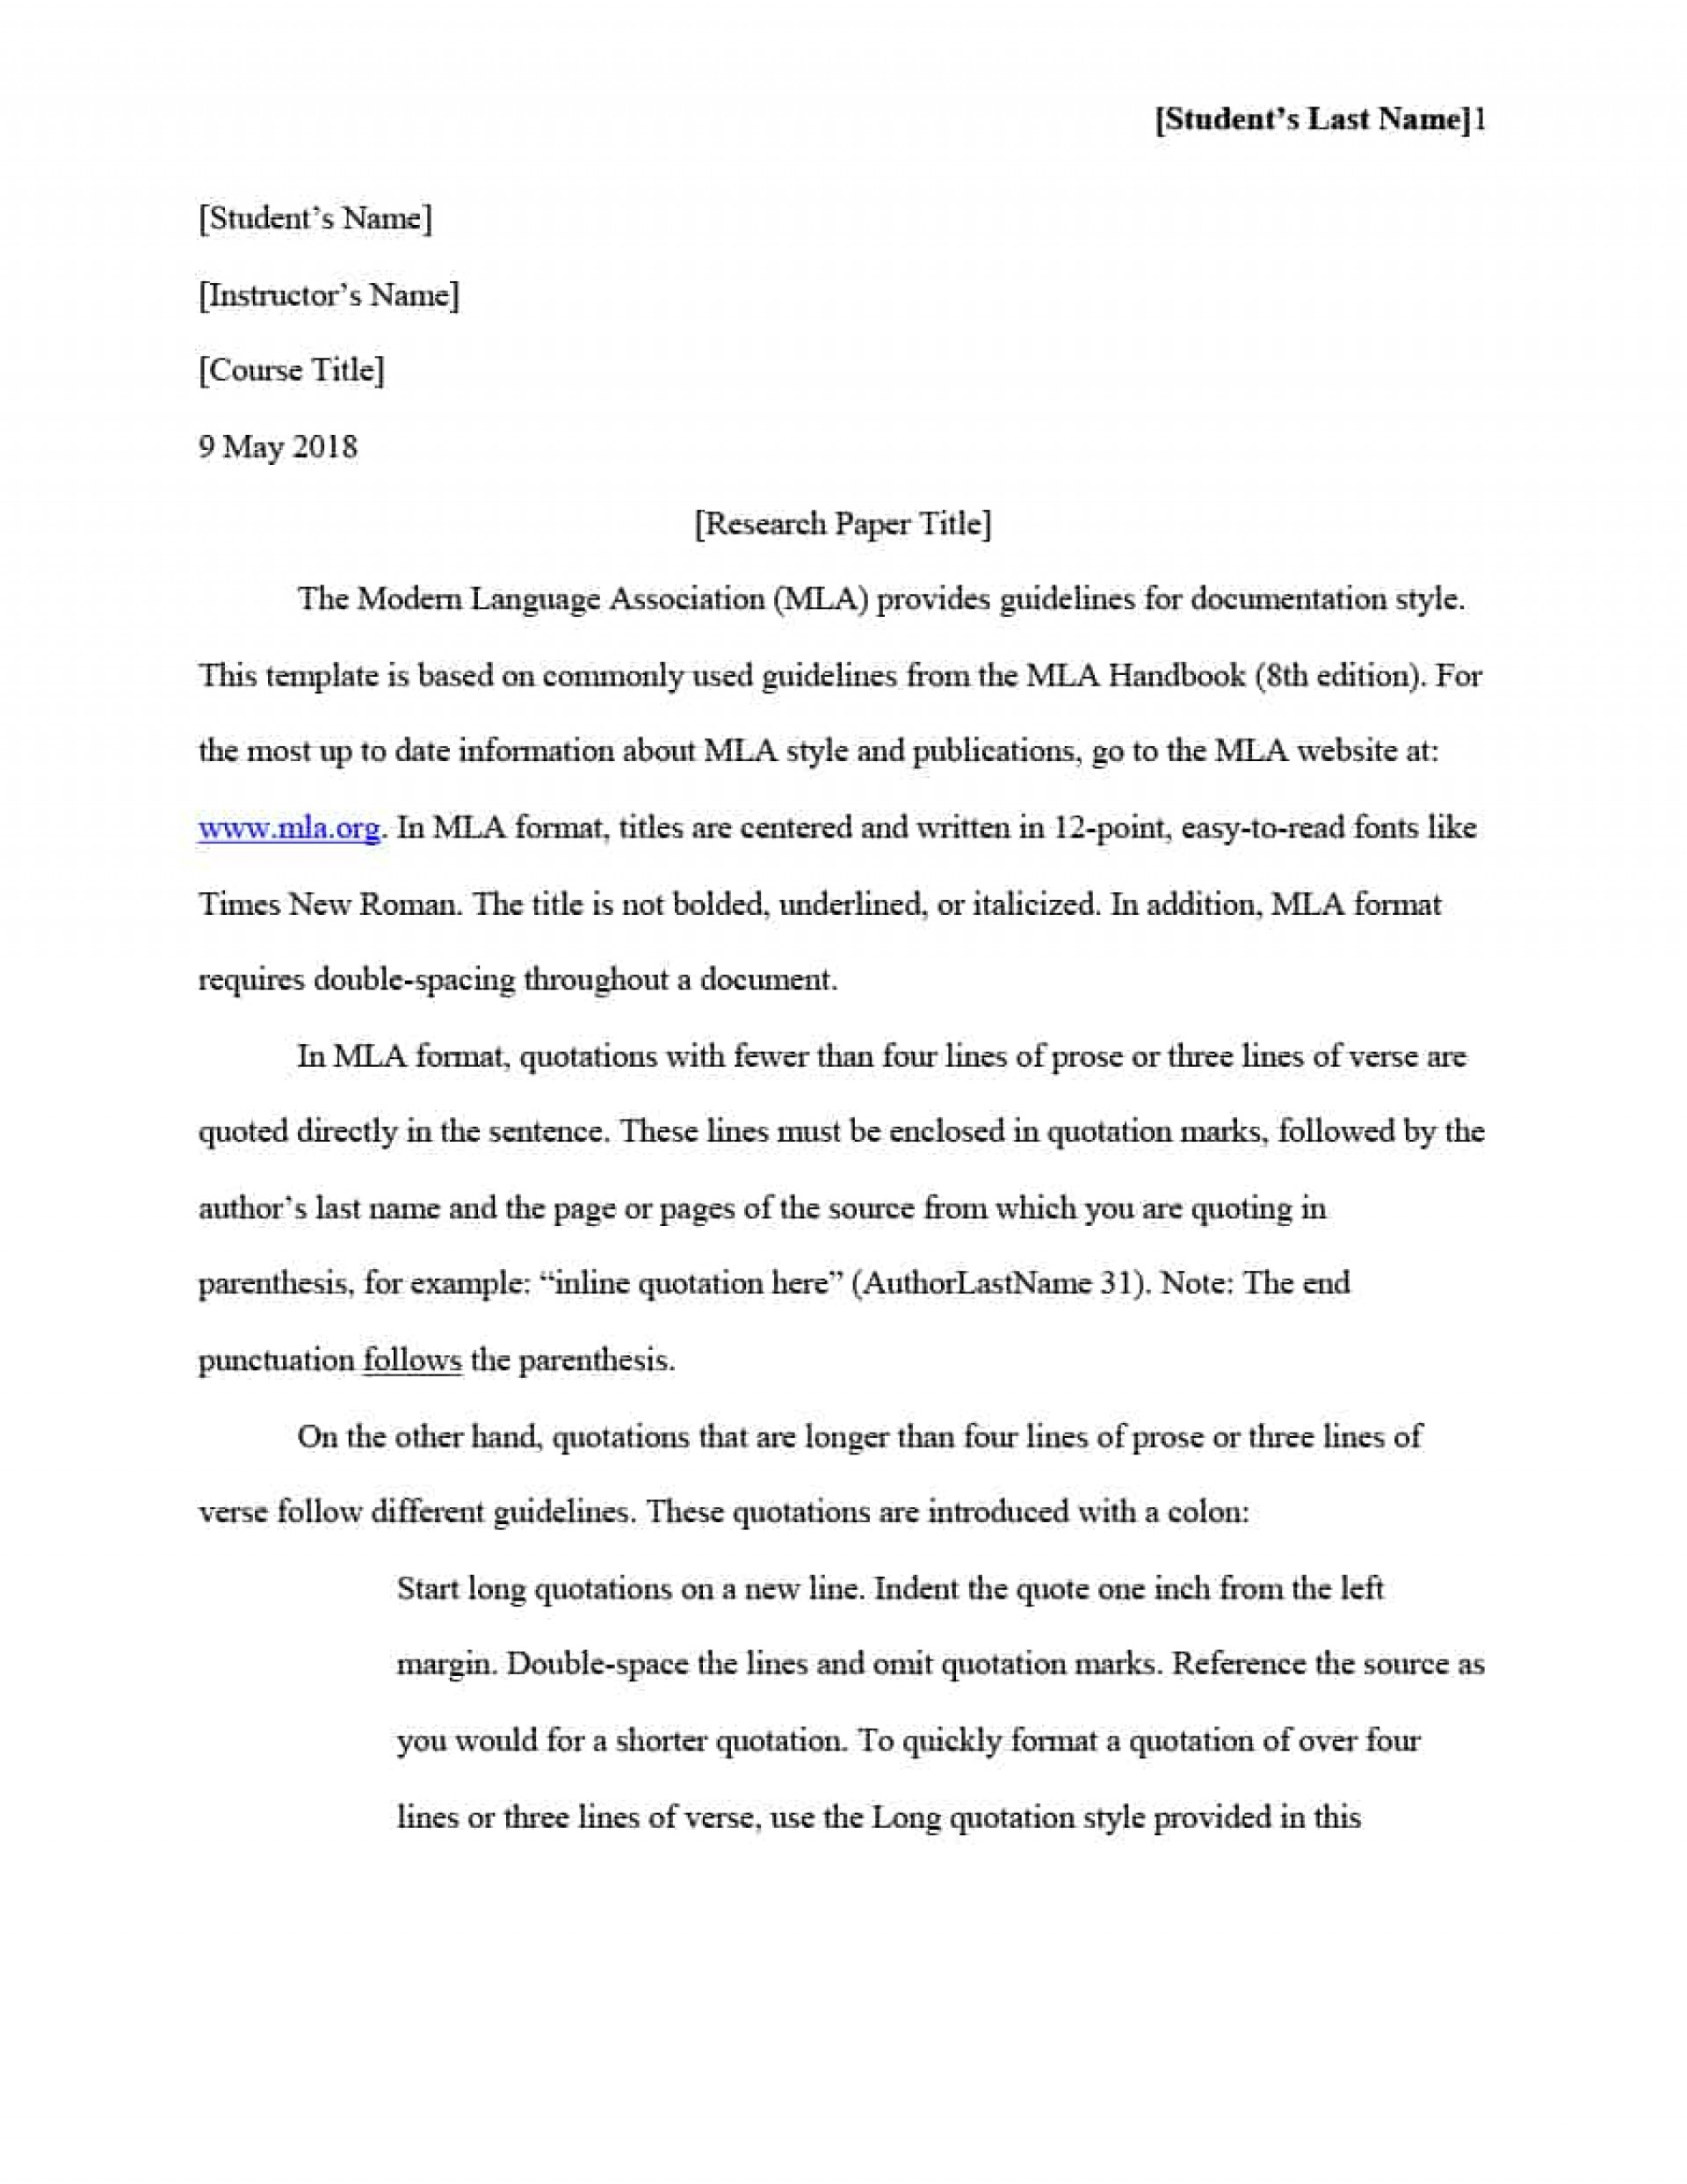 003 Research Paper Mla Style Format Template Fantastic Sample Title Page Outline 1920